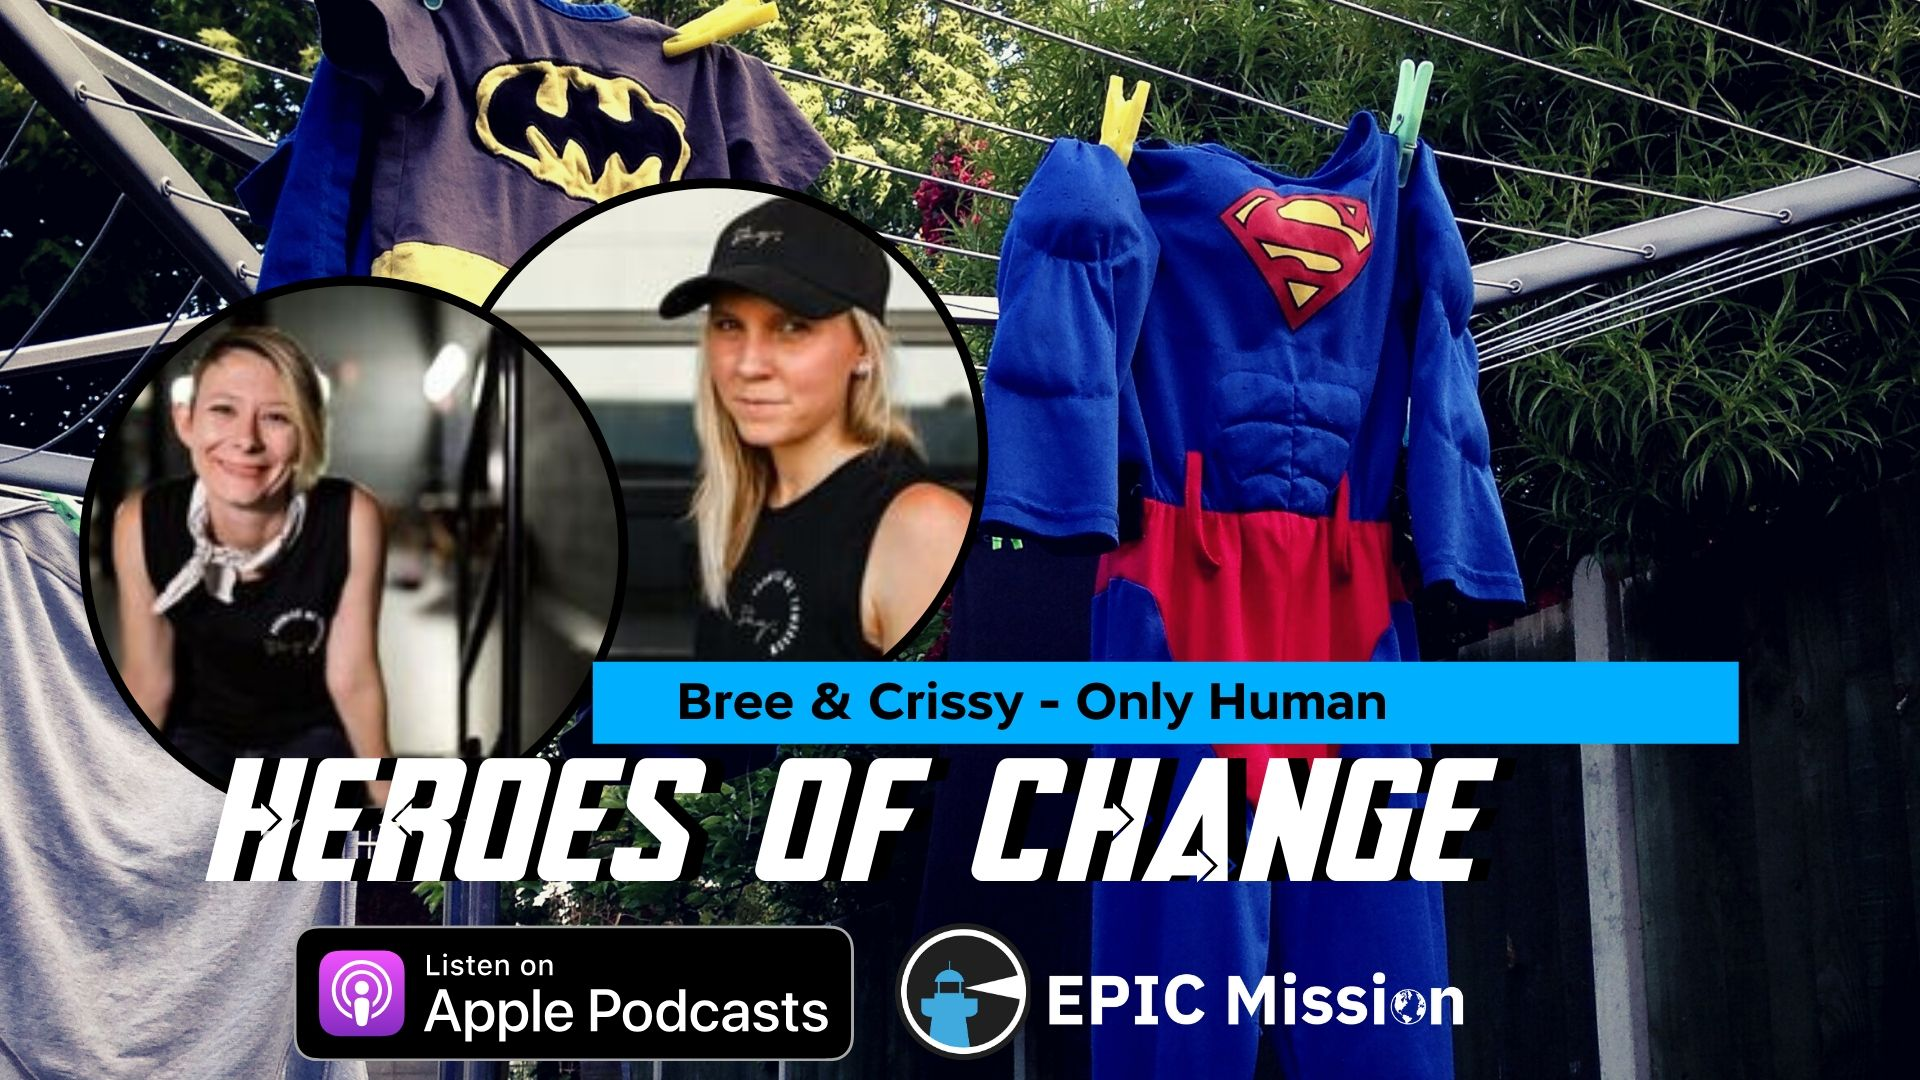 Heroes of Change: A Sit-Down with Bree Pear and Crissy Saint-Massey of Only Human